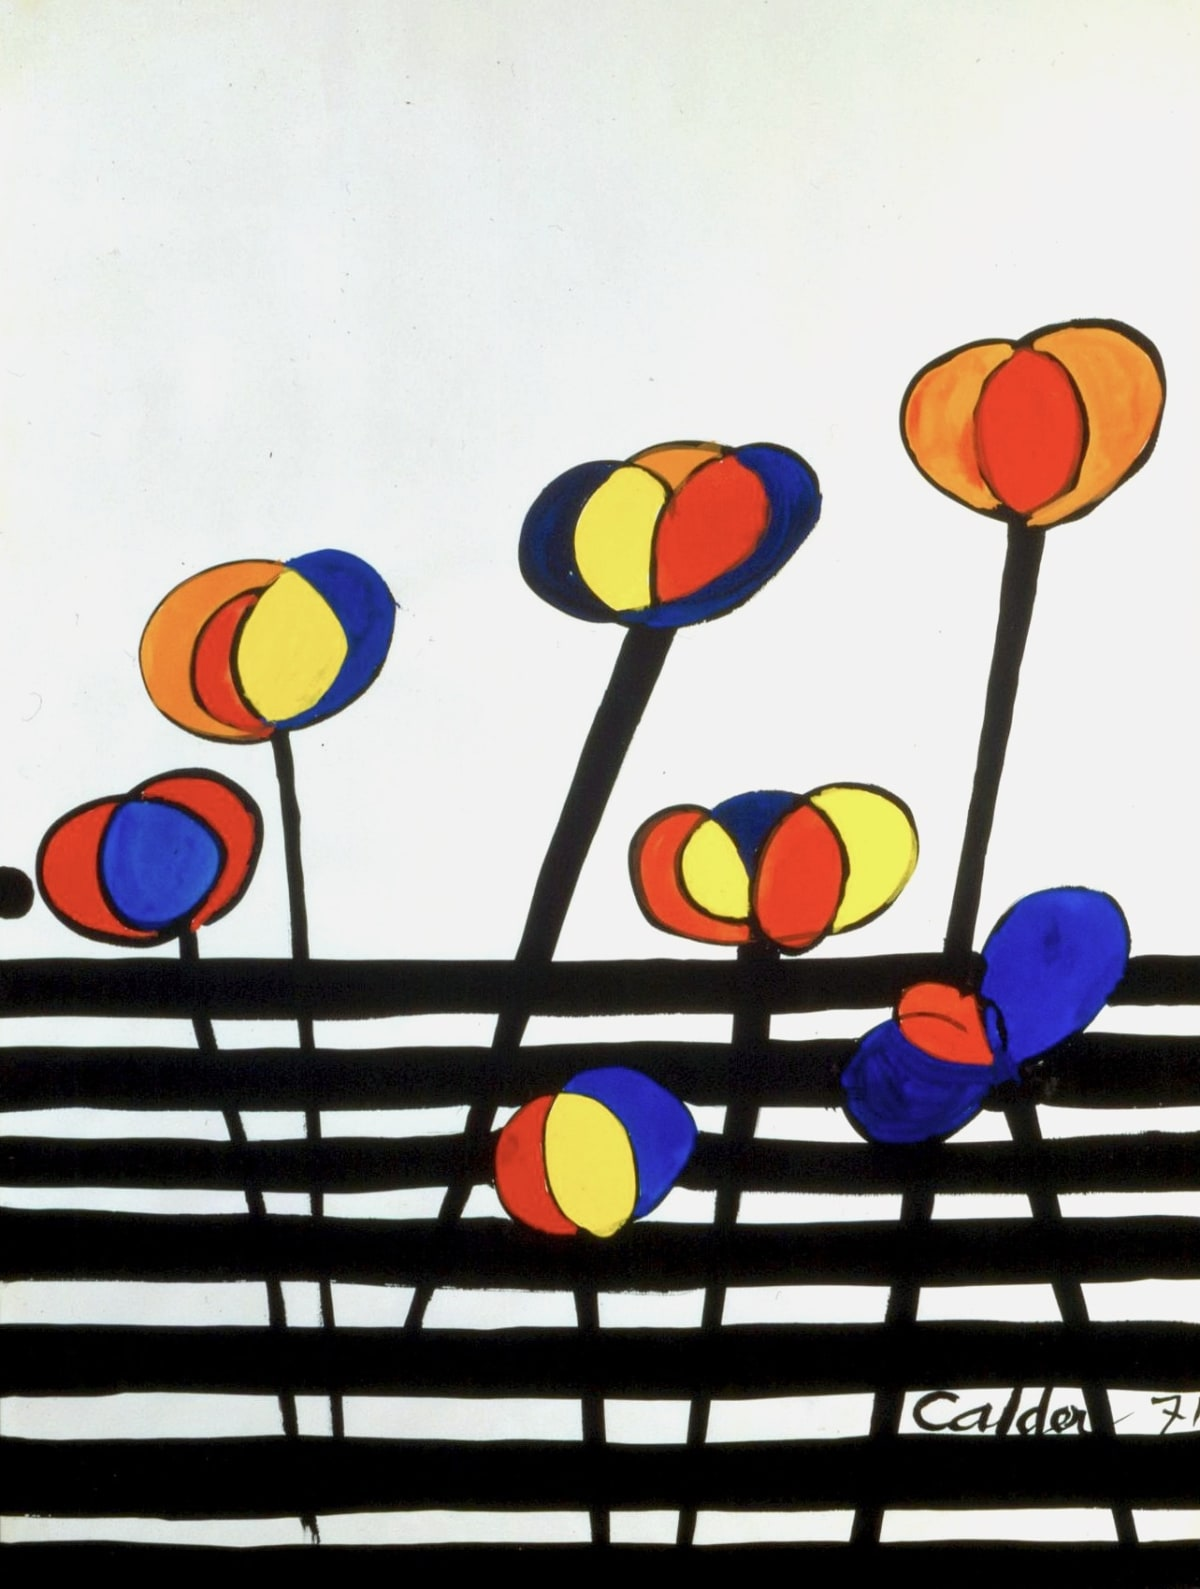 Alexander CALDER (1898 – 1976) La Barriere, 1971 Gouache on paper 30 ¼ x 22 ¼ inches / 76.8 x 56.5 cm Signed and dated Calder 71 lower right